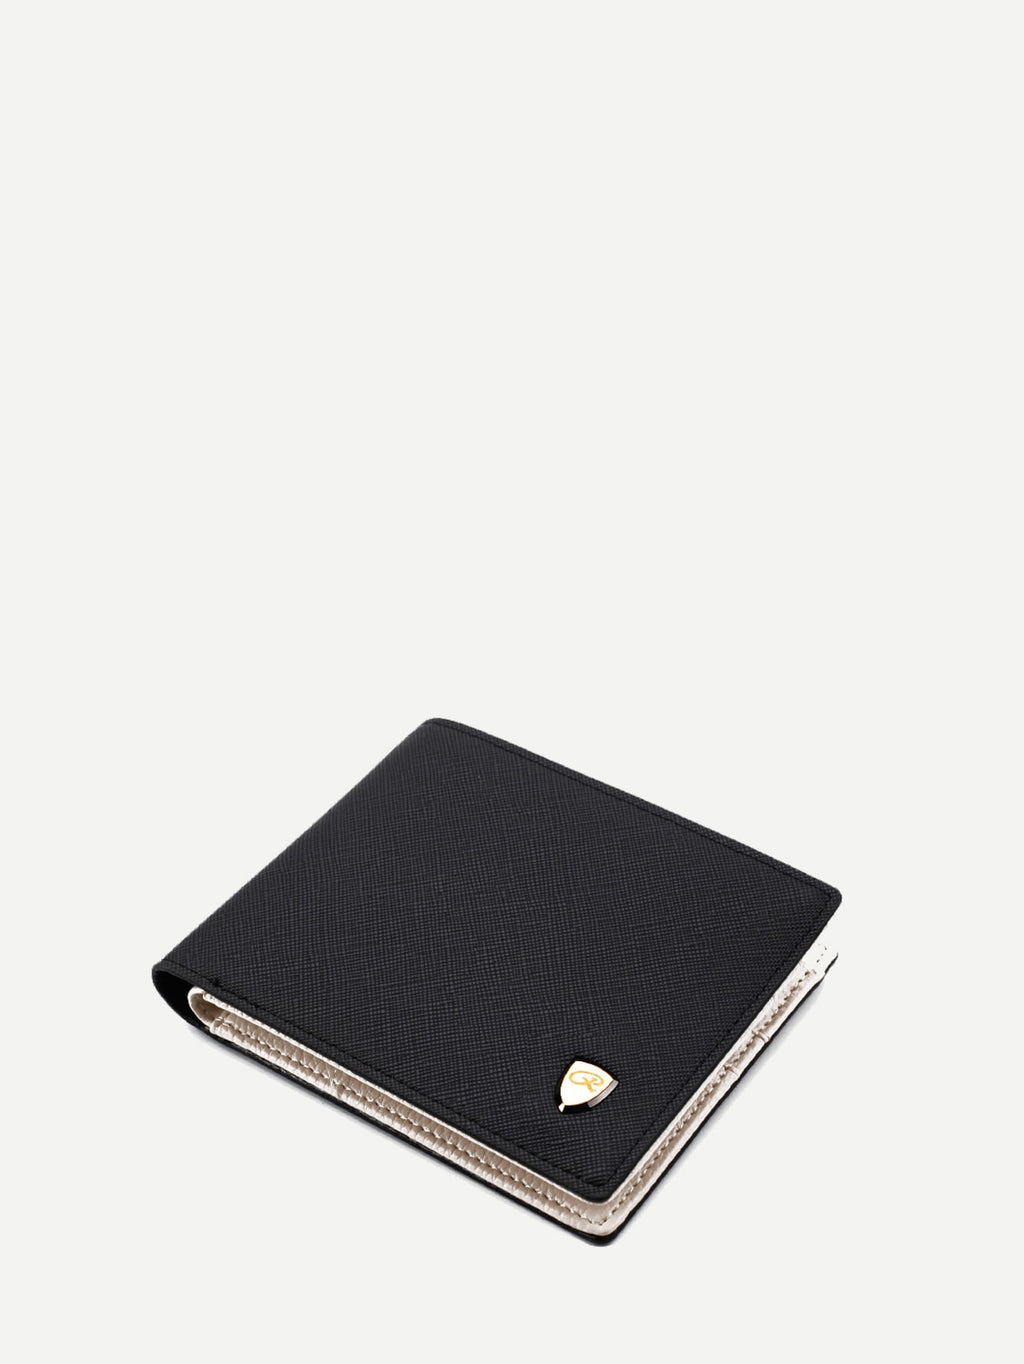 Men's Wallets - Fold Over Wallet With Card Slot